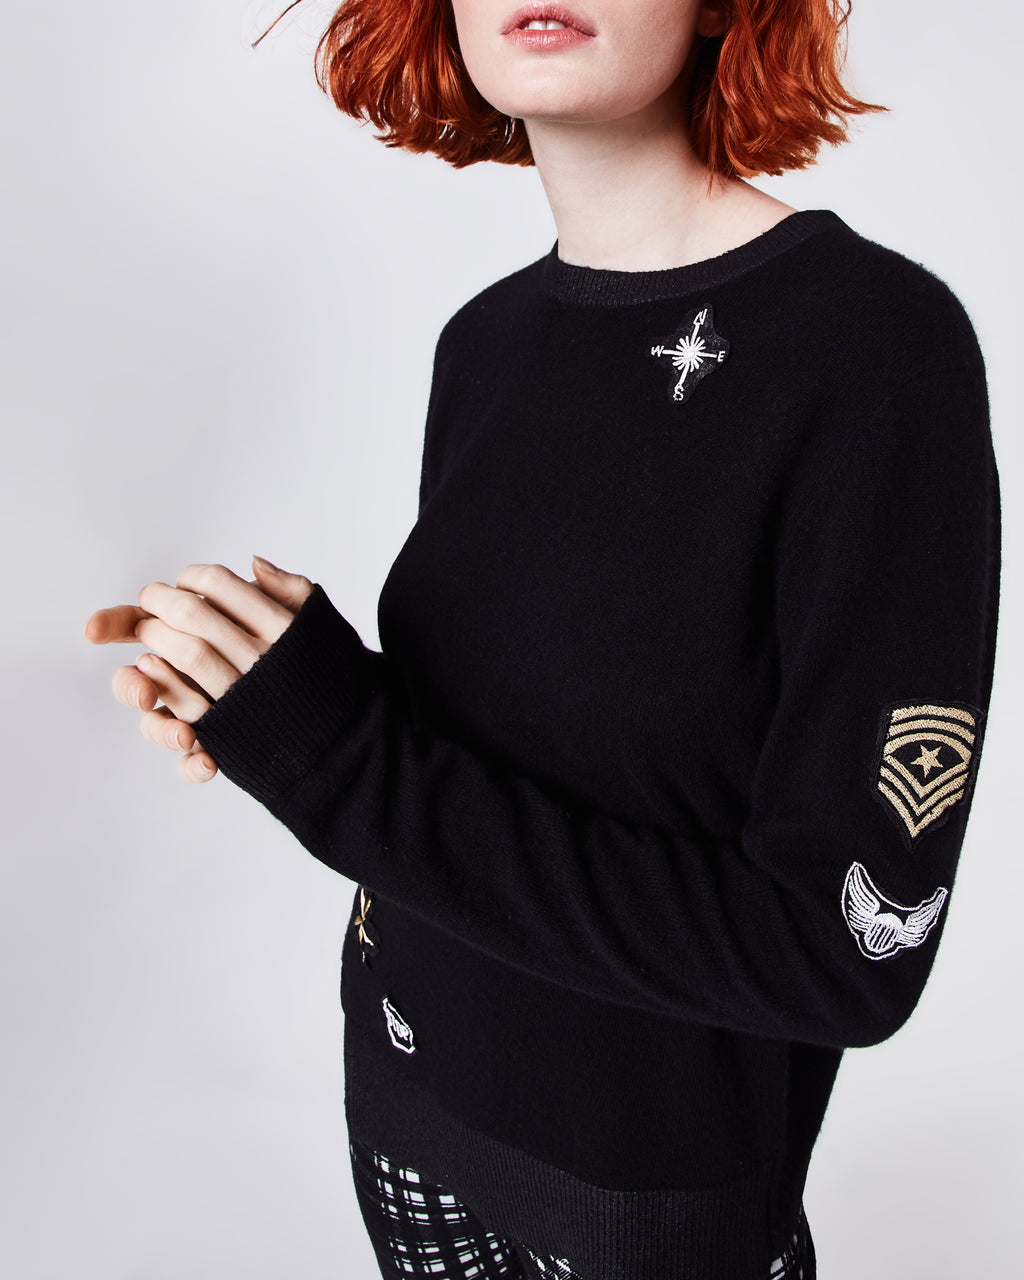 BQ10313 - FOILED CASHMERE ASYMMETRICAL SWEATER - tops - knitwear - With an asymmetical hemline, foiled triming and patches throughout, this sweater is anything but boring.